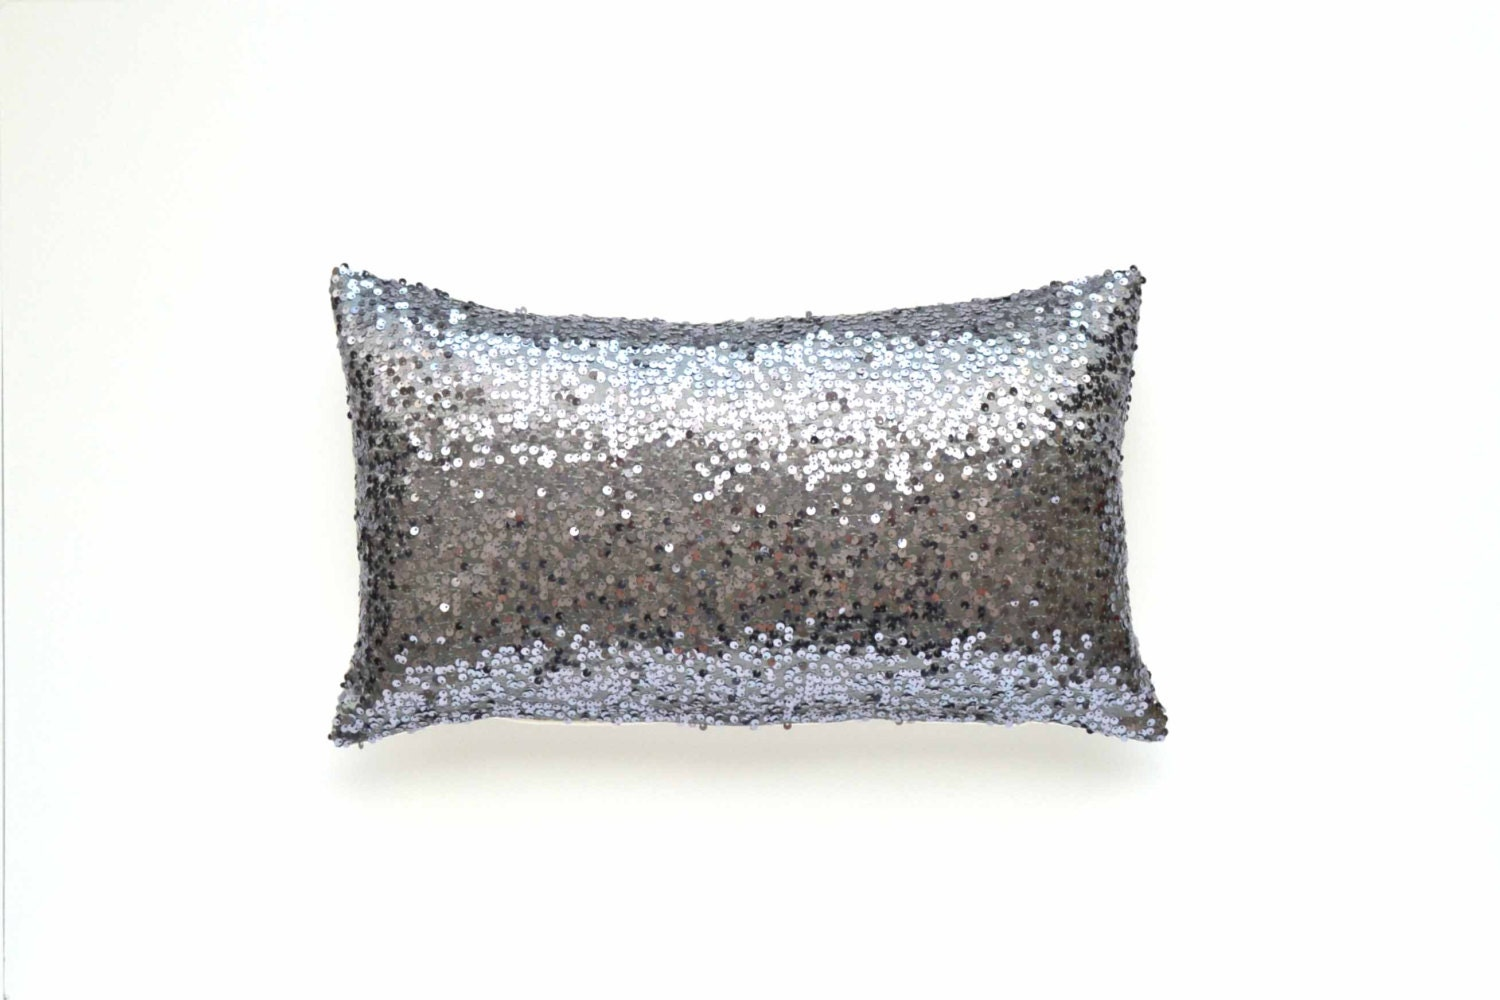 Decorative Pillows With Sequins : Gray Lumbar Pillow Cover - Gunmetal Silver Sequin - 12 x 20 - Decorative Pillow, Throw Pillow ...